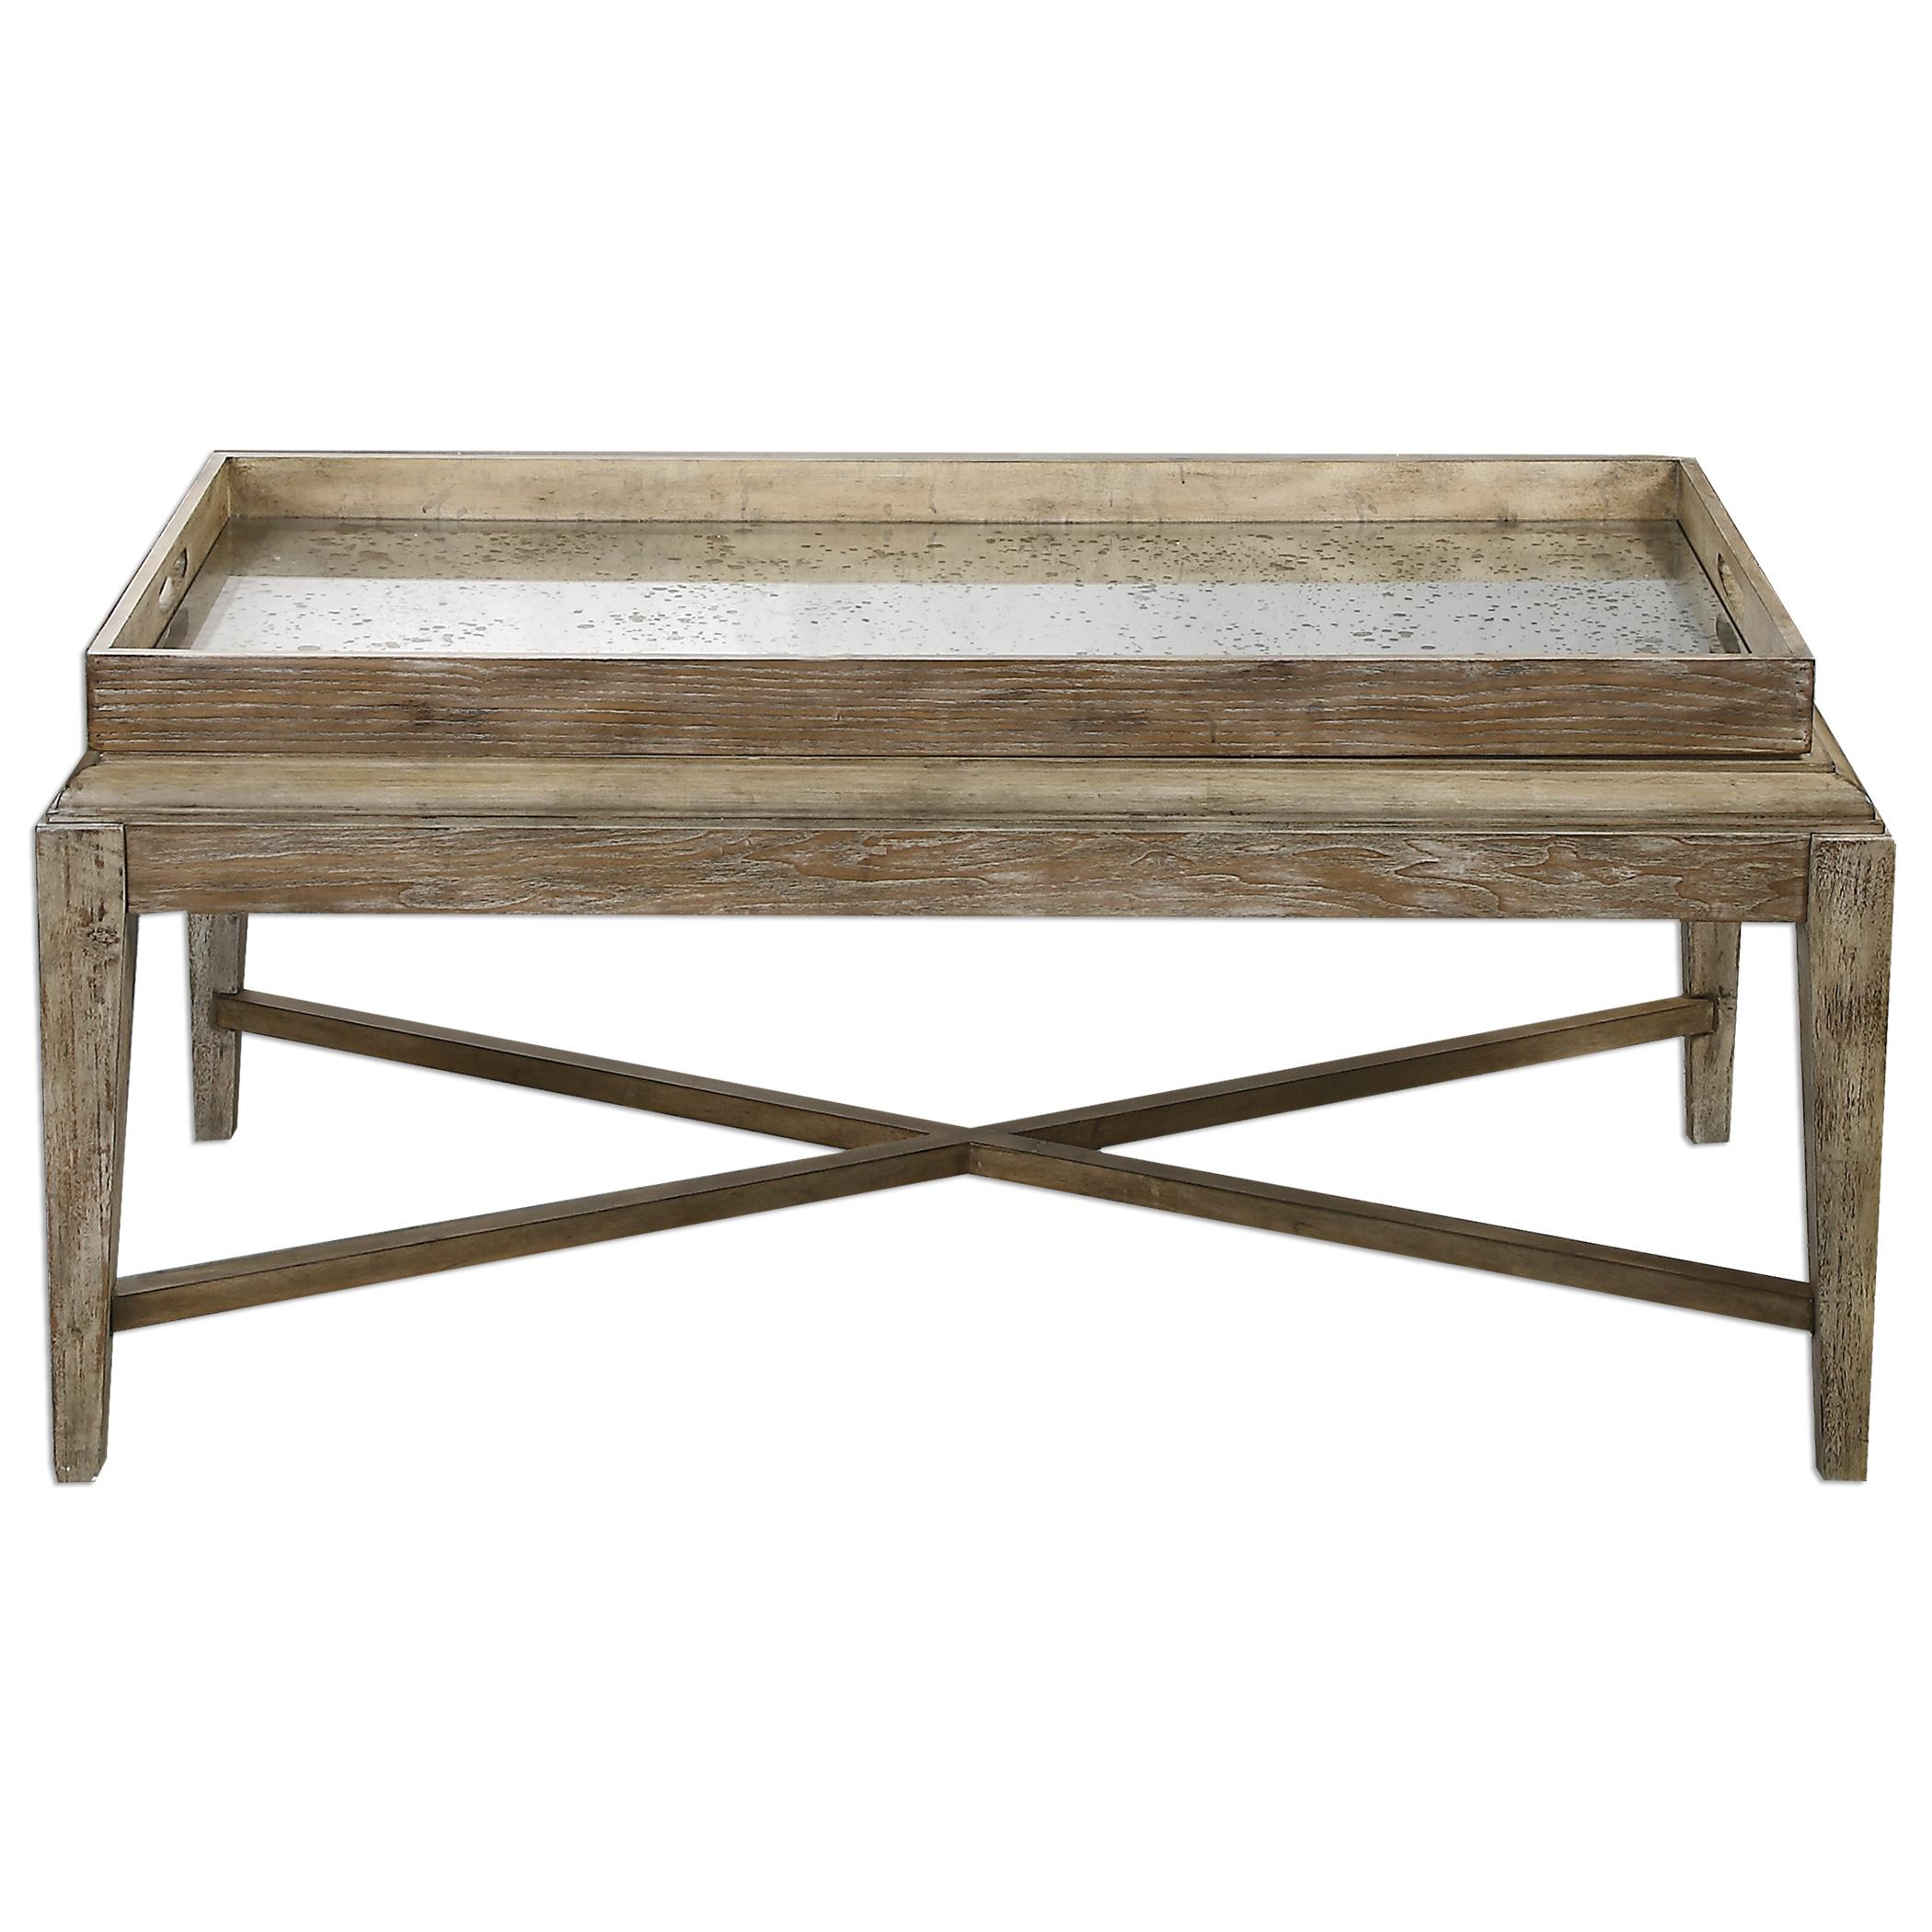 Uttermost accent furniture 24526 marek wooden coffee table for Bright colored side tables